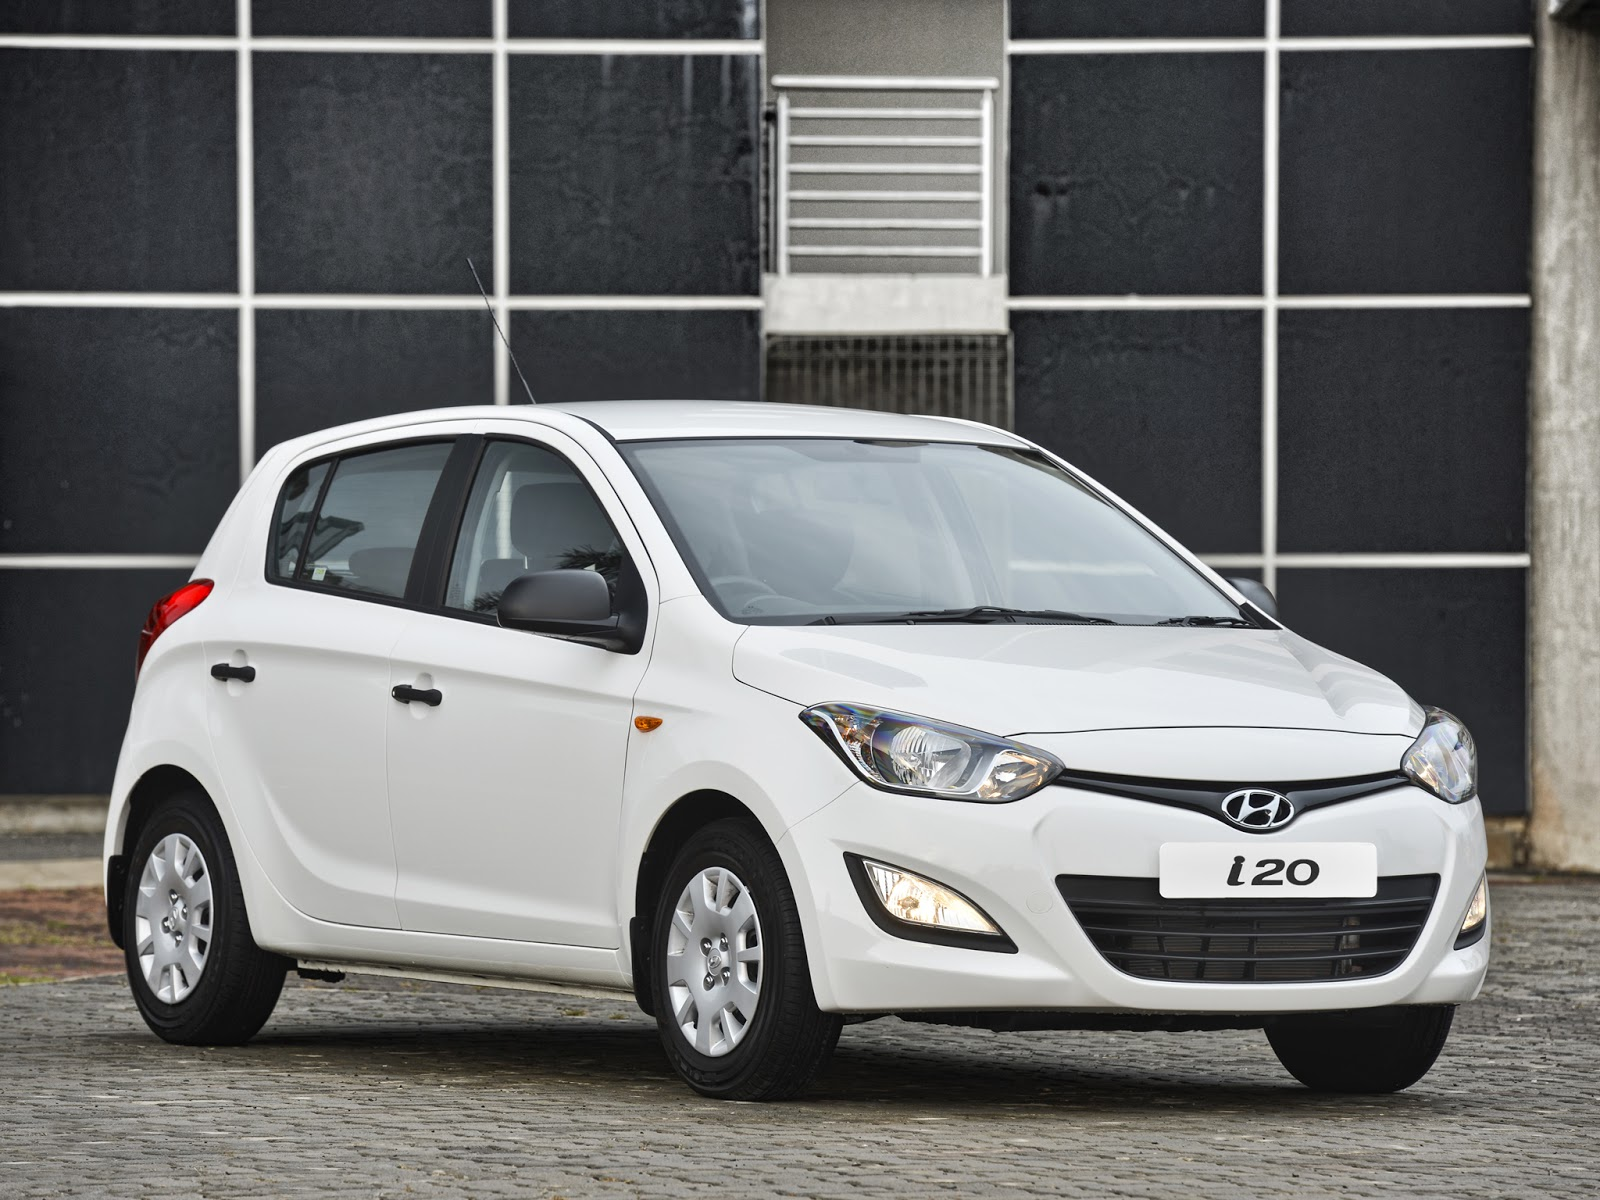 hyundai i20 new model i20 interior accessories hd images free download fine hd wallpapers